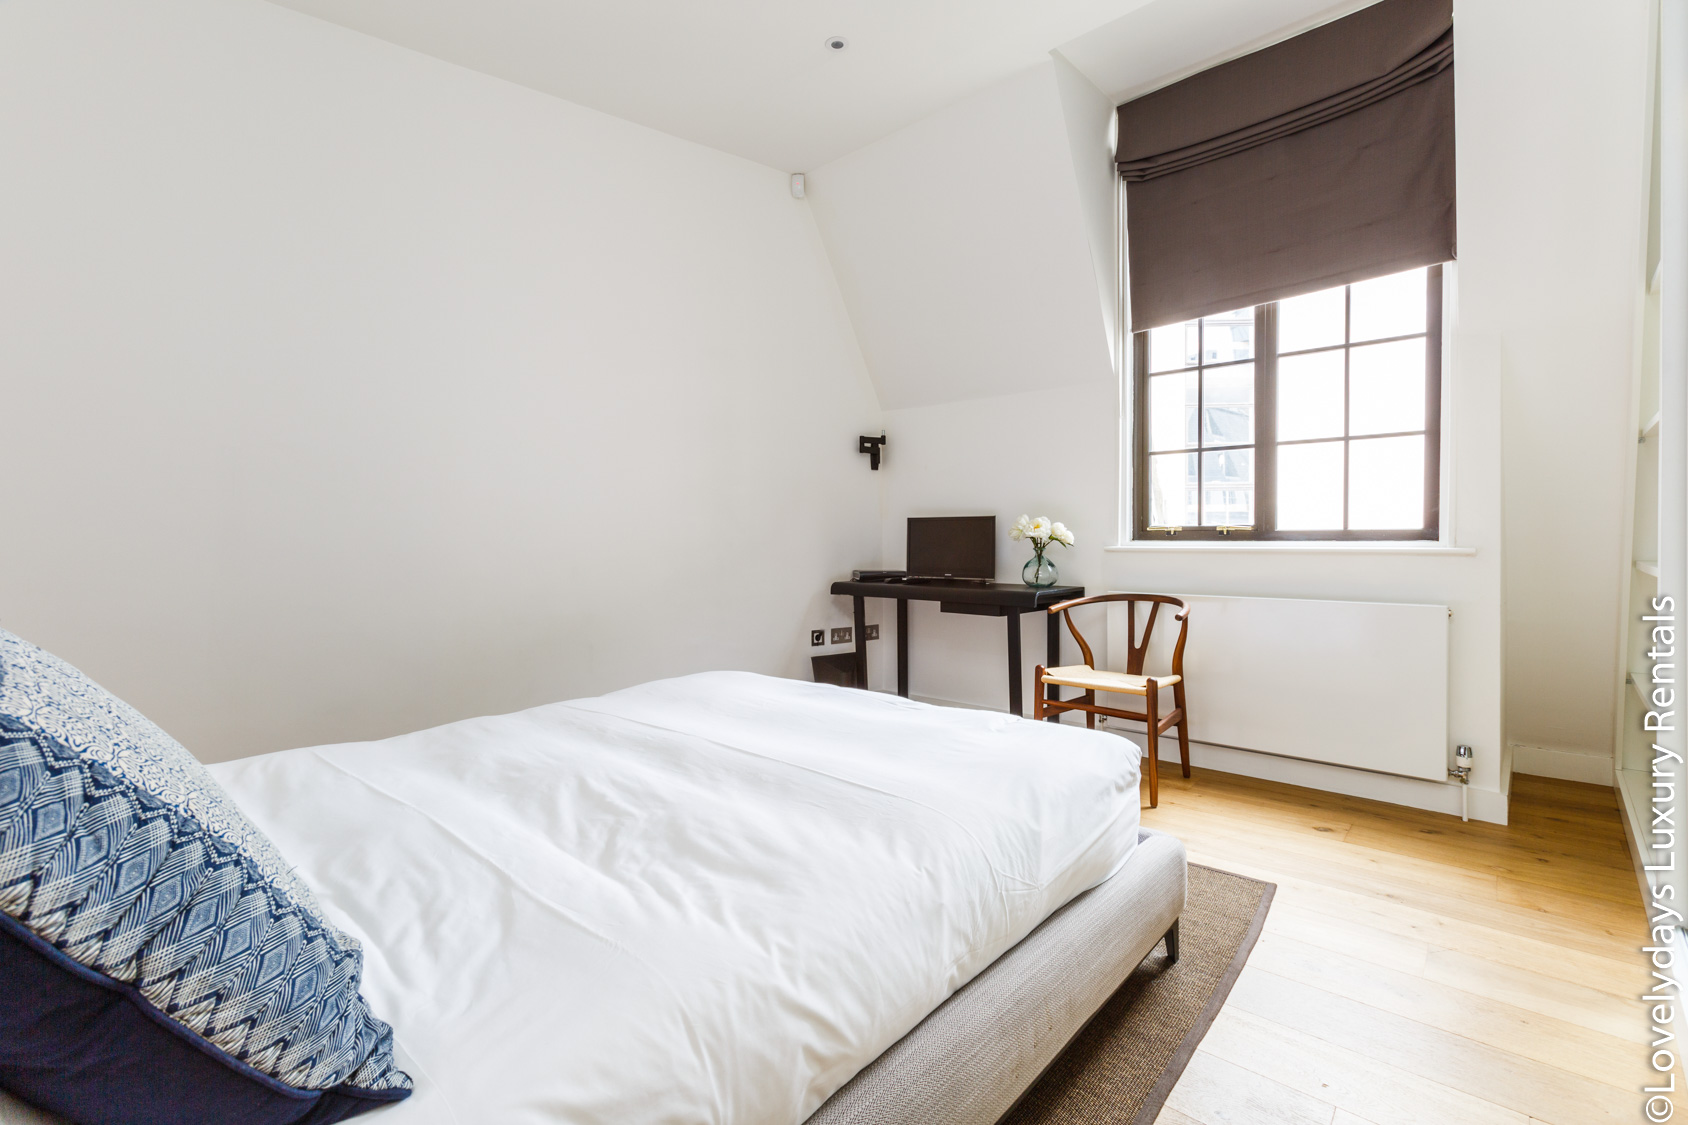 Lovelydays luxury service apartment rental - London - Covent Garden - Cockspur Street - Lovelysuite - 3 bedrooms - 2 bathrooms - Double bed - ea61436979a0 - Lovelydays